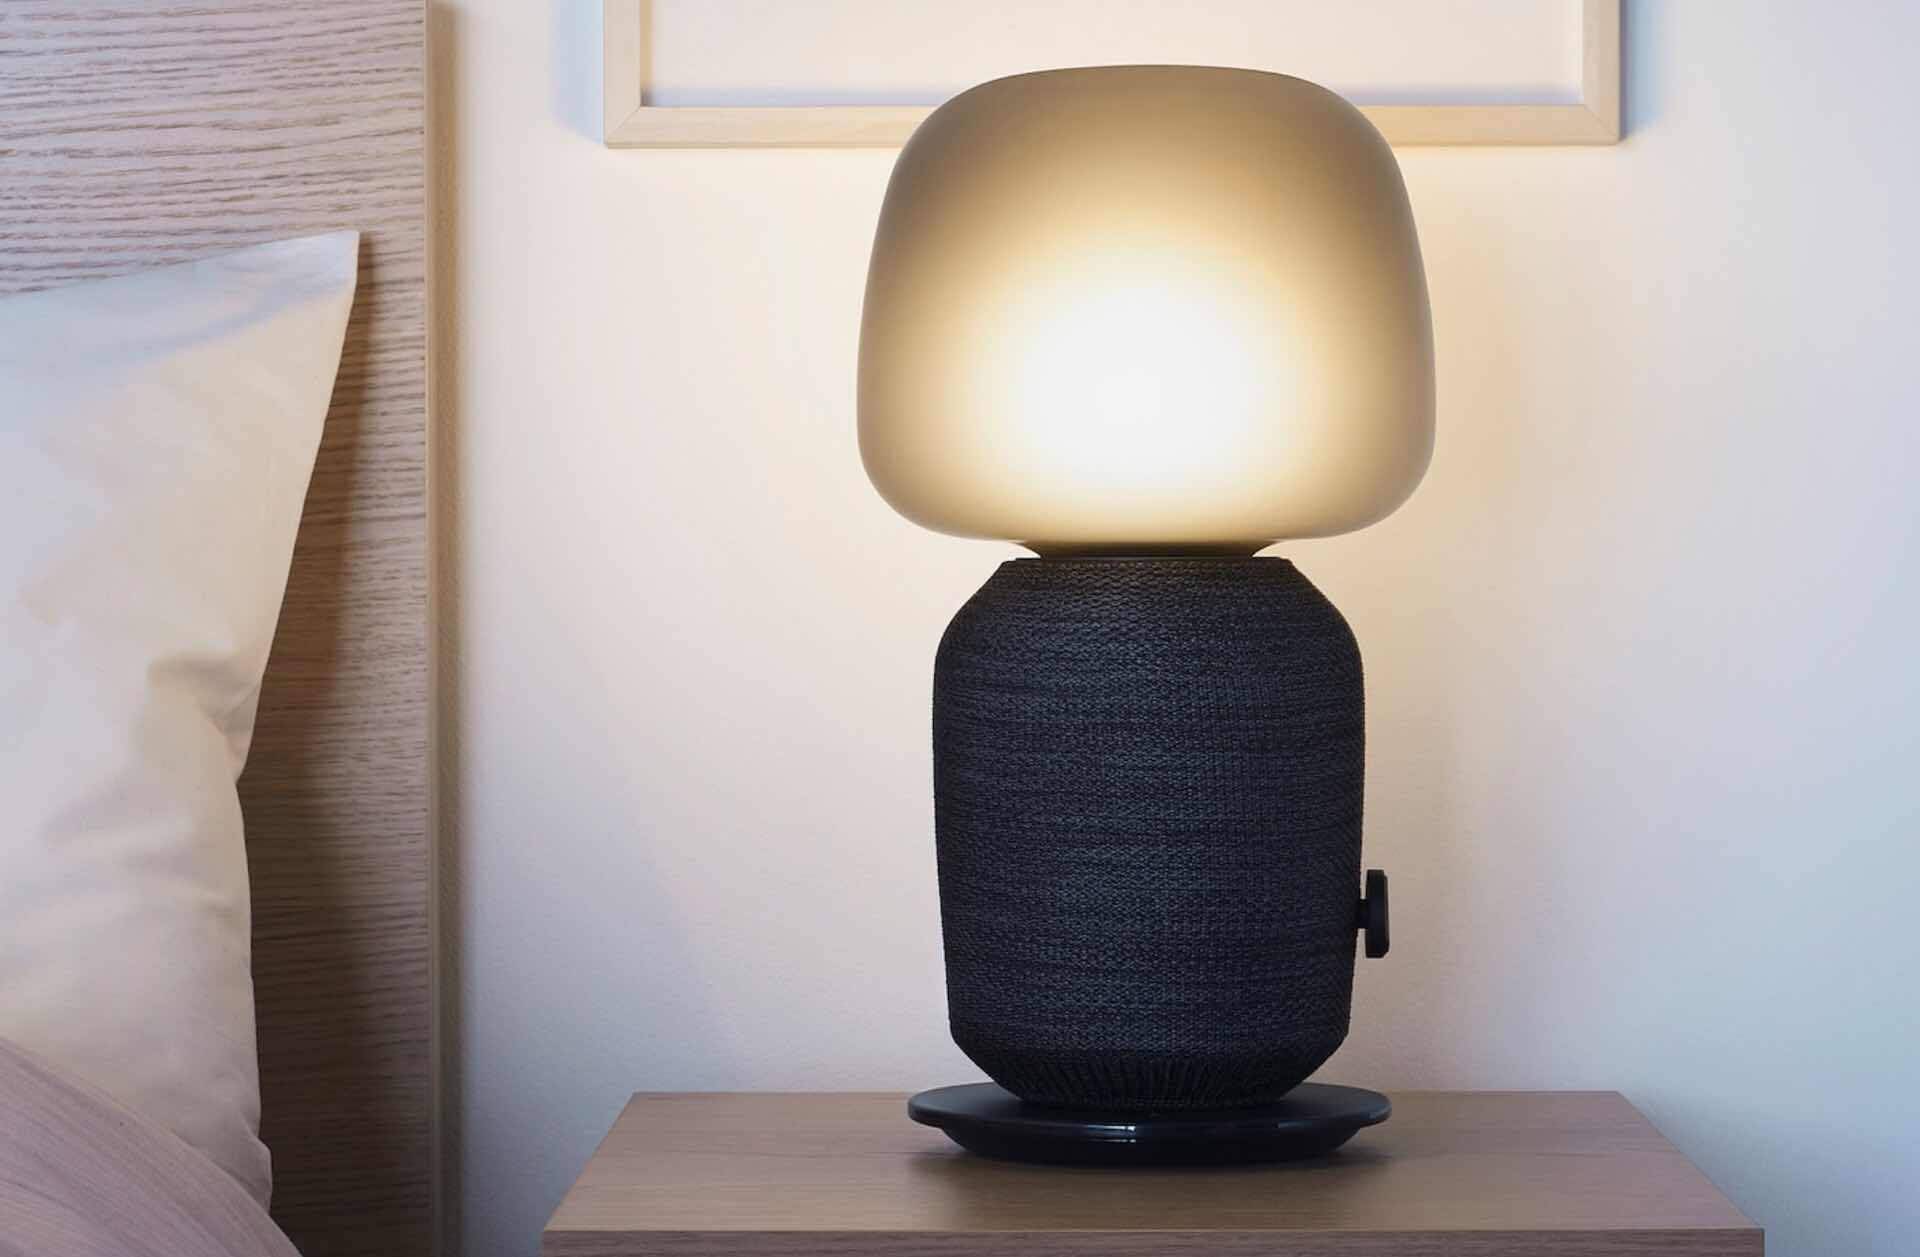 ikea-sonos-symfonisk-table-lamp-and-wi-fi-speaker-black